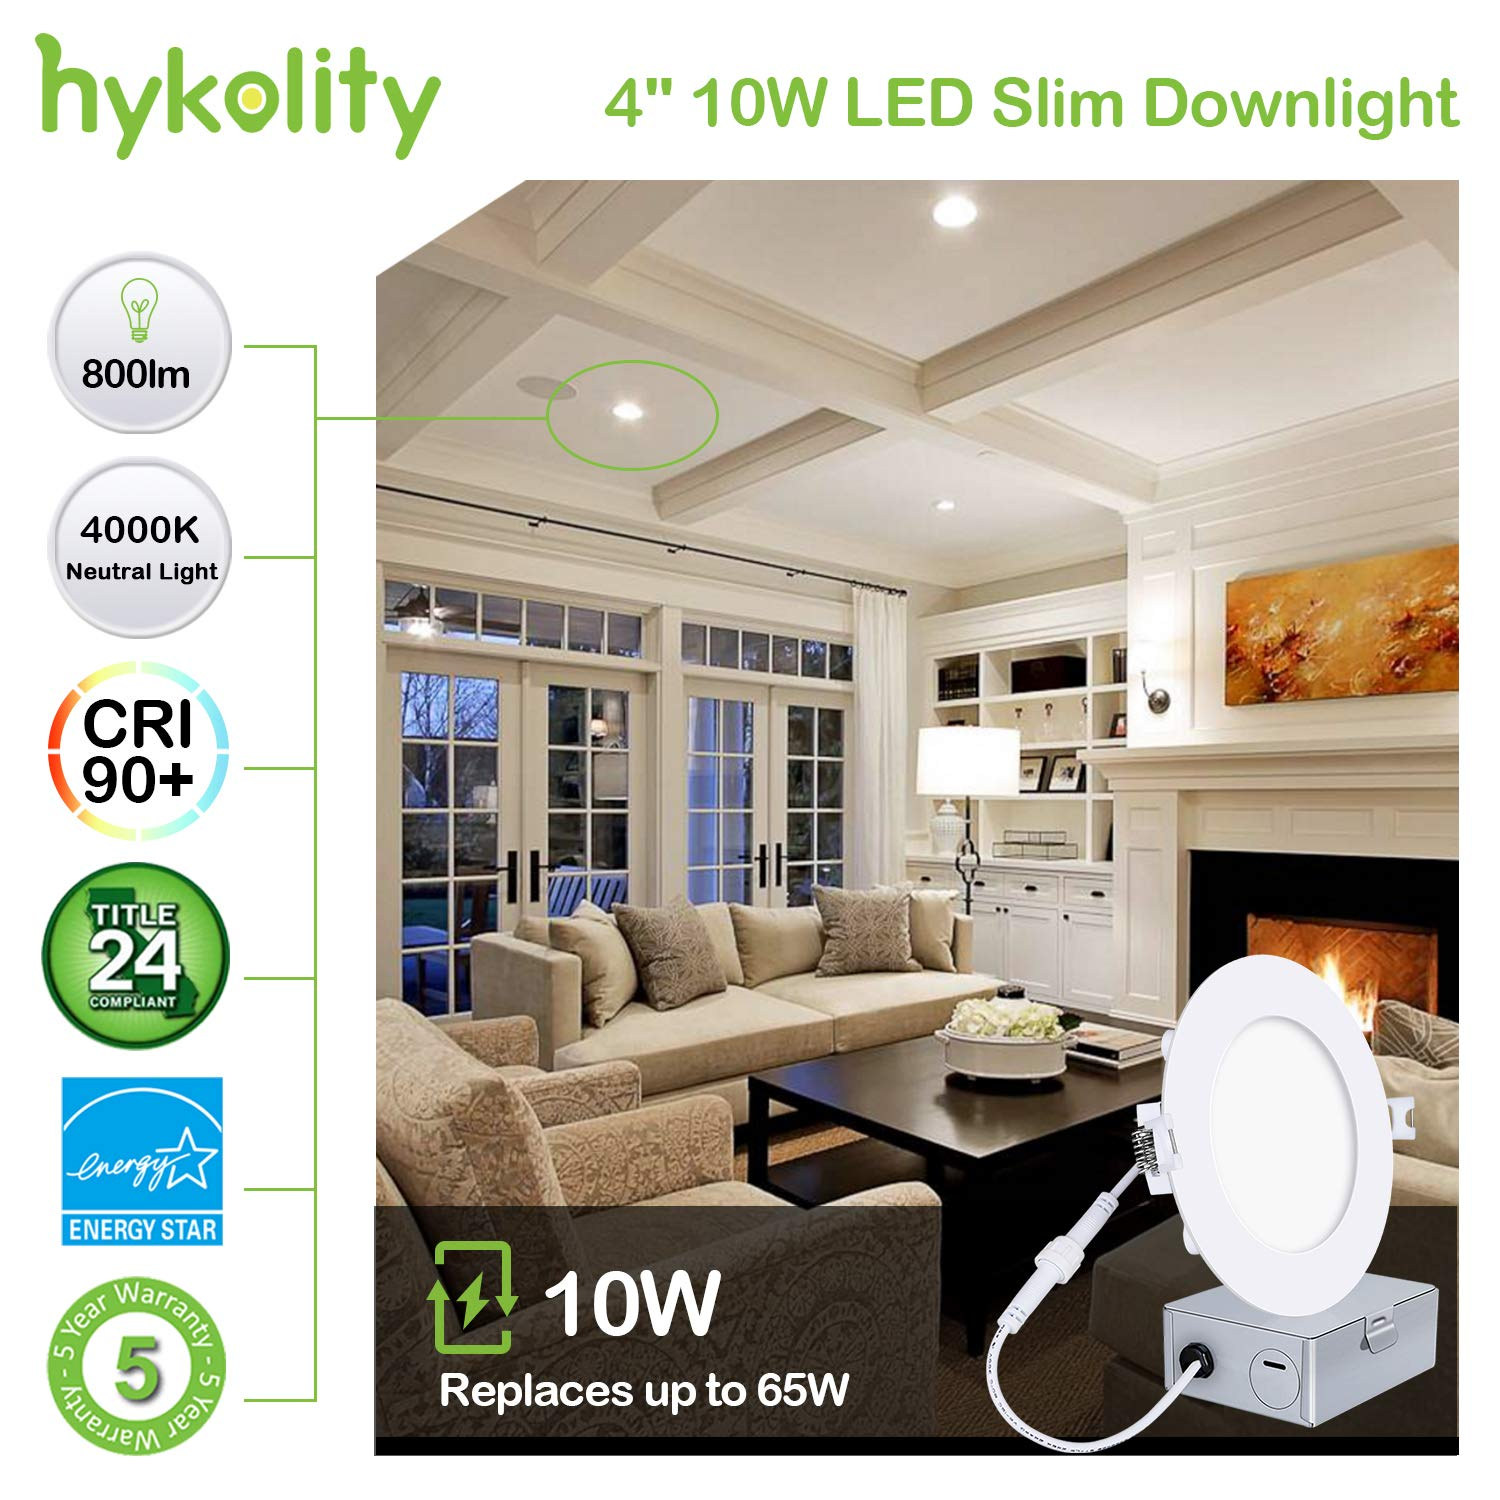 Hykolity 12 Pack 10W 4 Inch LED Slim Recessed Ceiling Light, 800lm, CRI90, 4000K Neutral White, Low Profile Downlight with Junction Box Dimmable, ETL& Energy Star Listed,Title 24 Compliant by hykolity (Image #3)